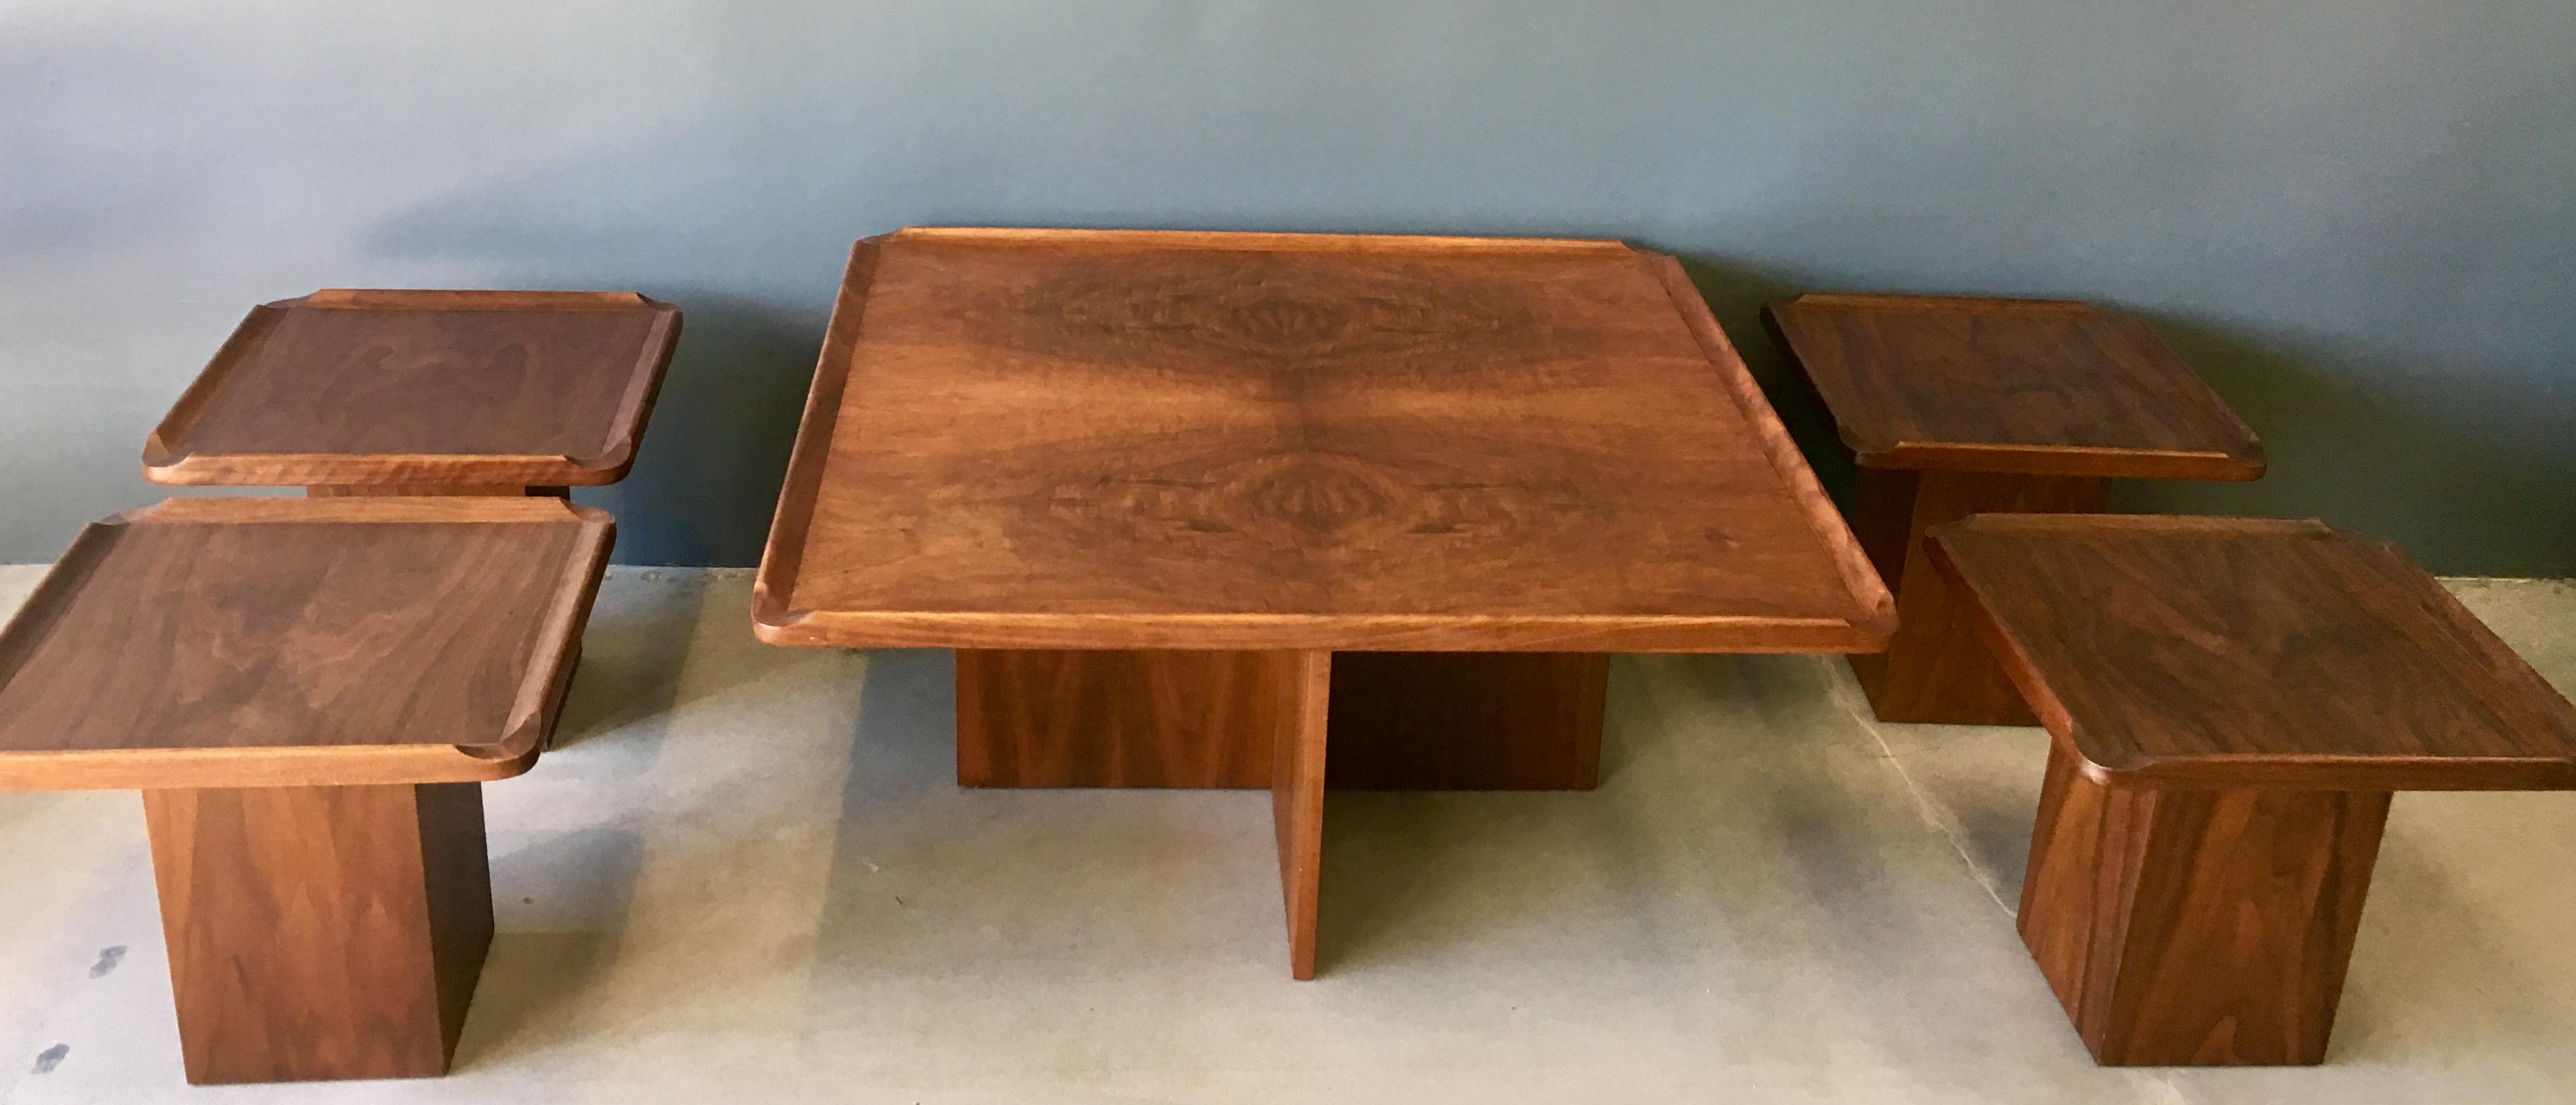 Exceptionnel Brown Saltman Mid Century Coffee U0026 Nesting Tables   5 Pieces   Image 2 Of